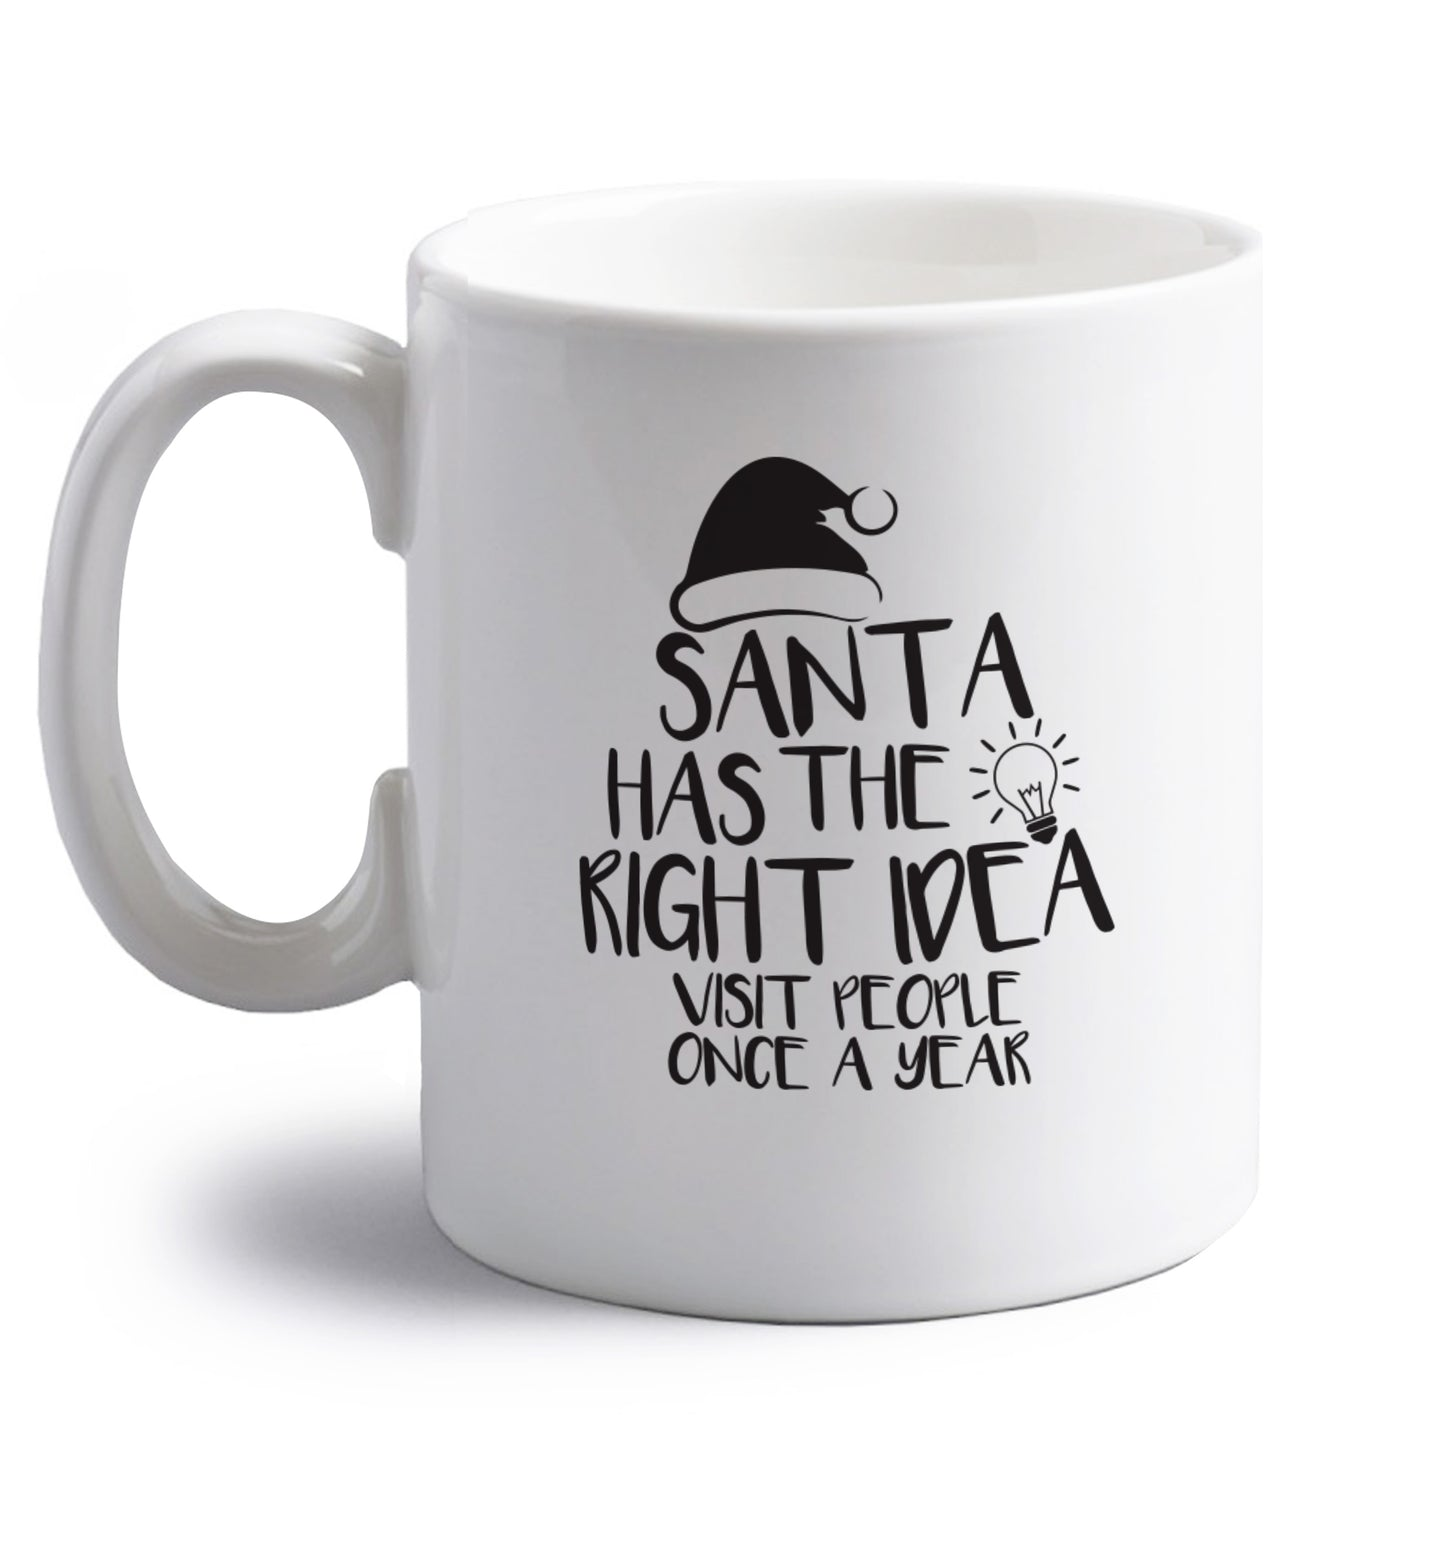 Santa has the right idea visit people once a year right handed white ceramic mug